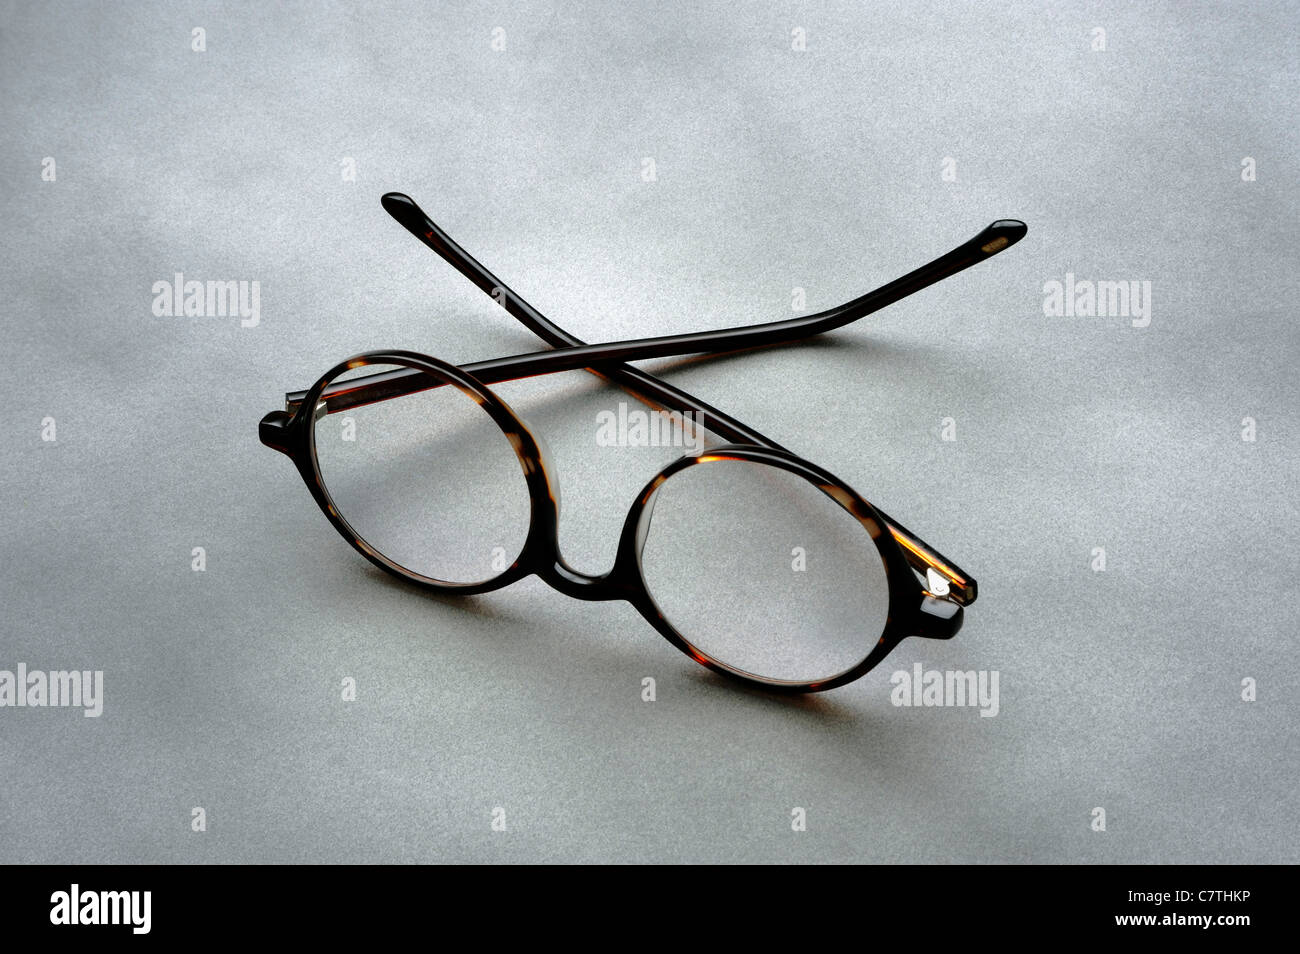 PAIR OF GLASSES OR READING GLASSES Stock Photo